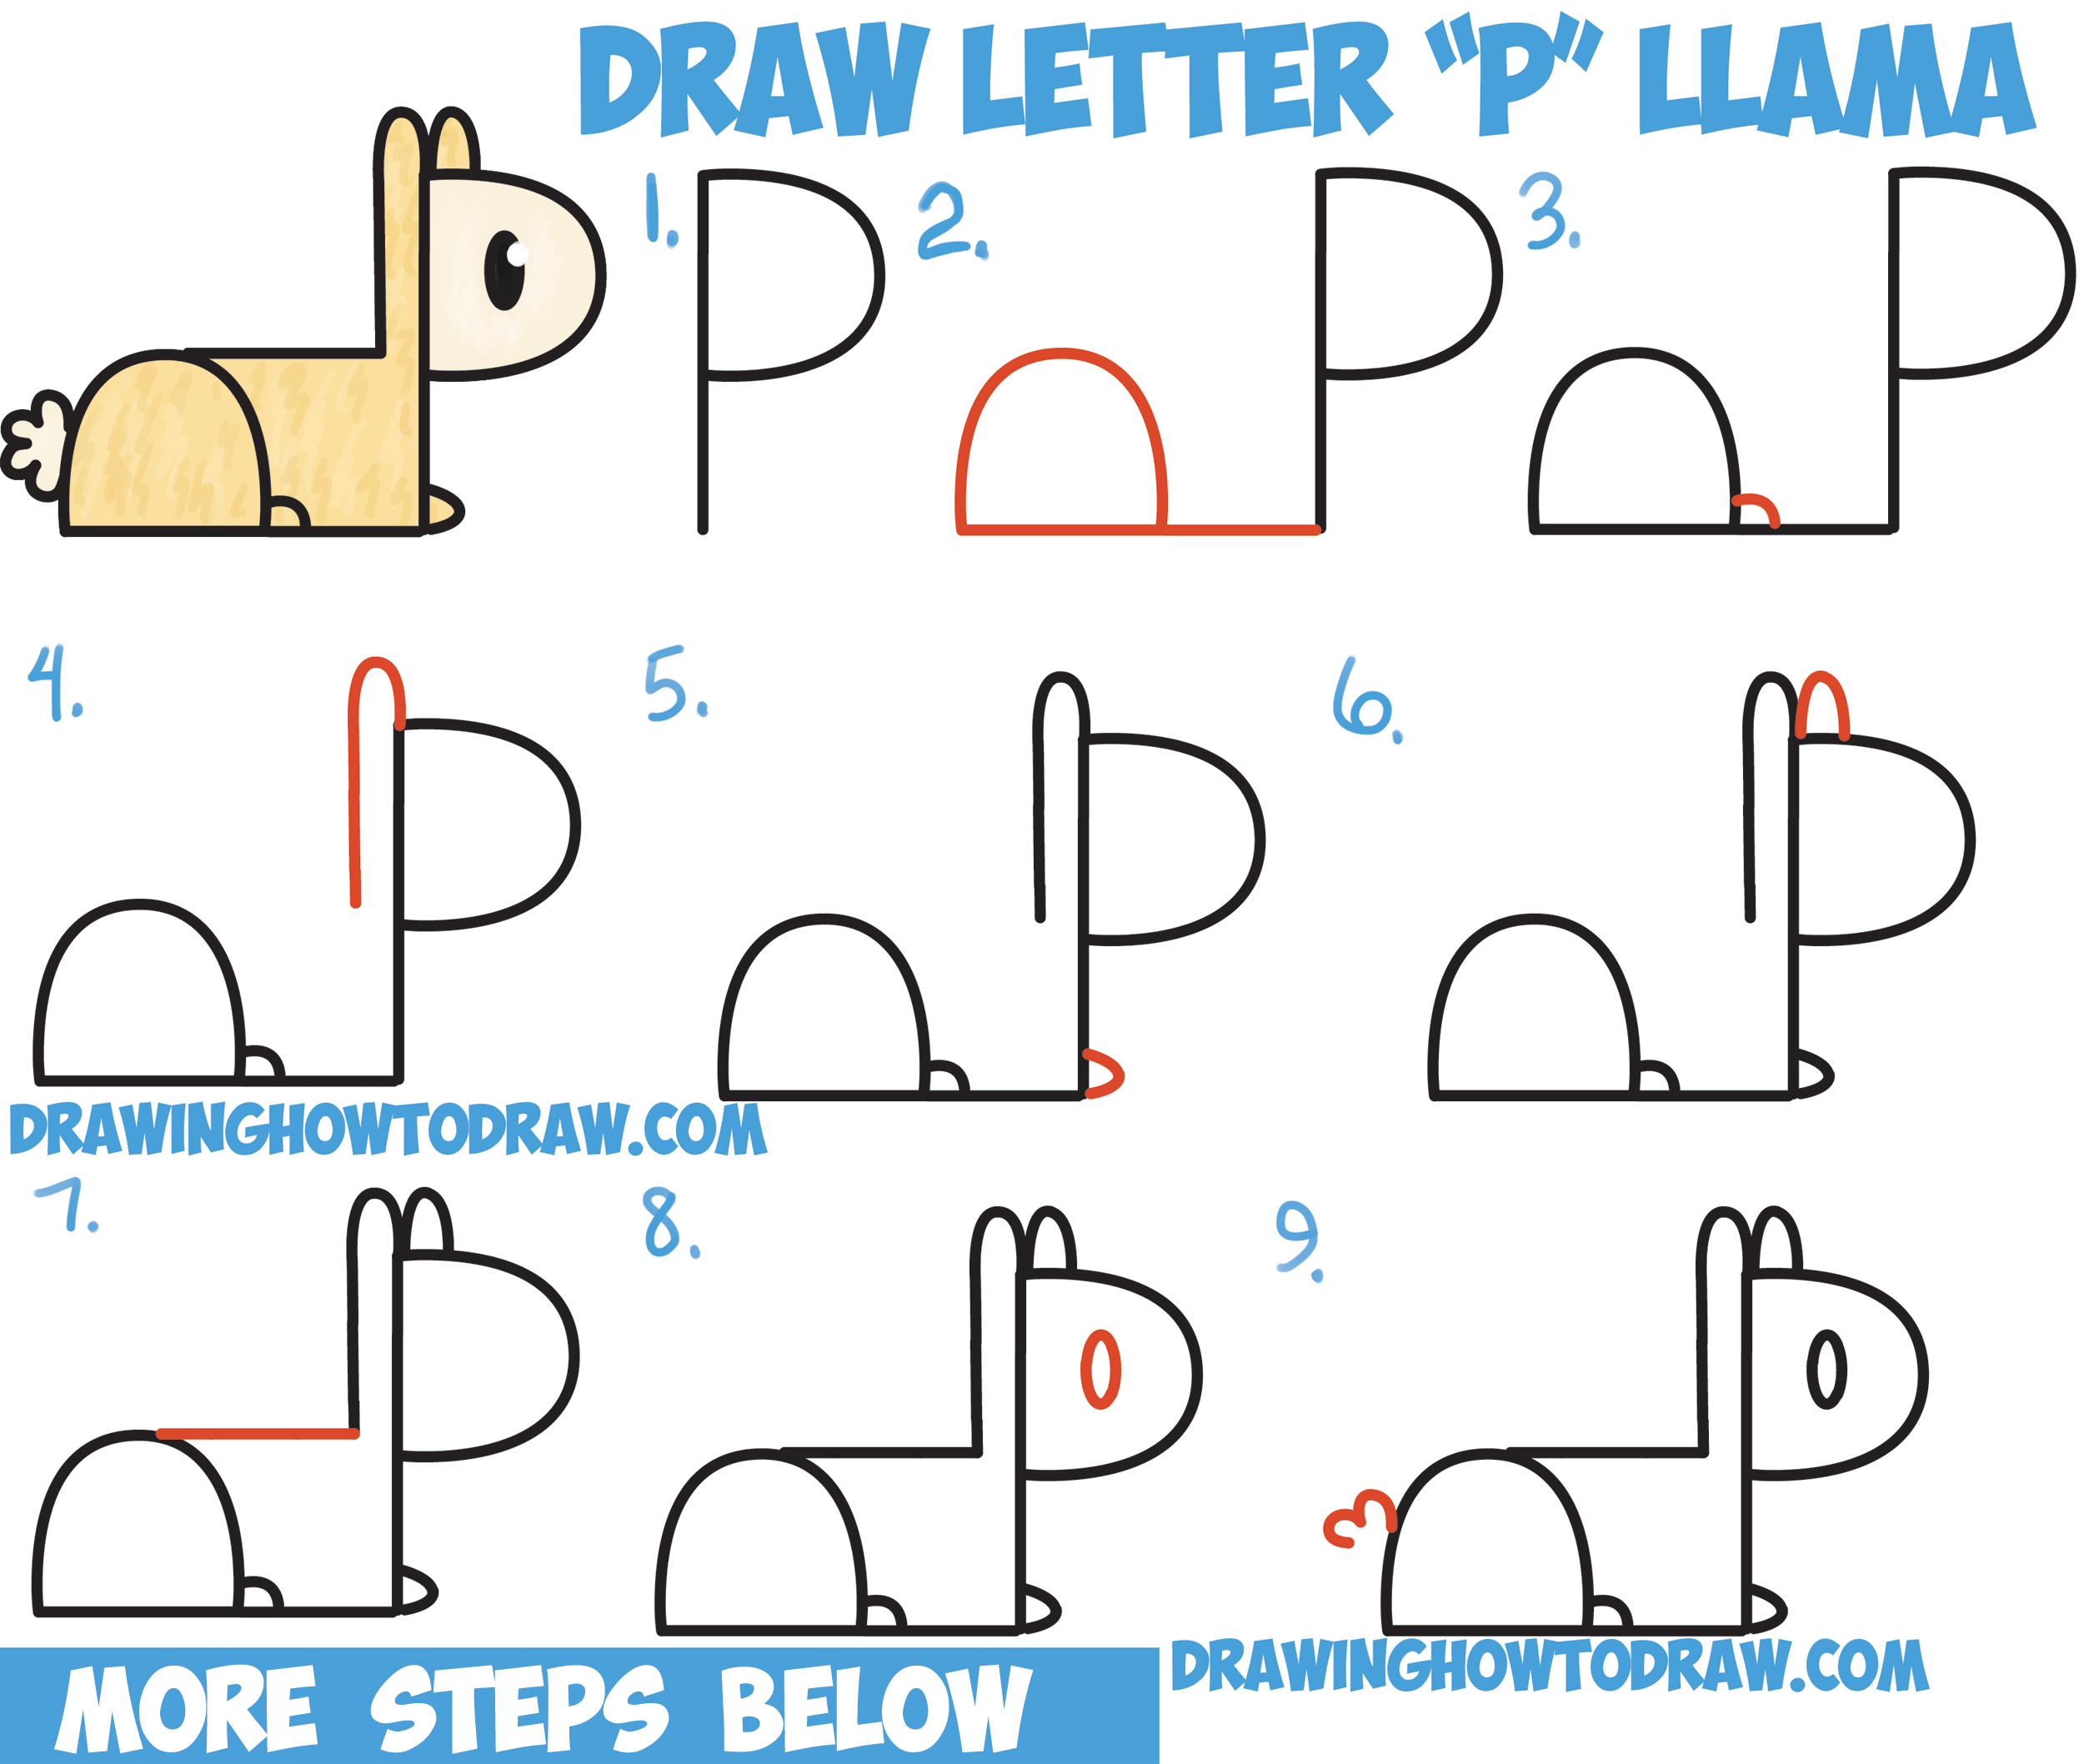 How To Draw Cute Cartoon Kawaii Llama Or Alpaca From P